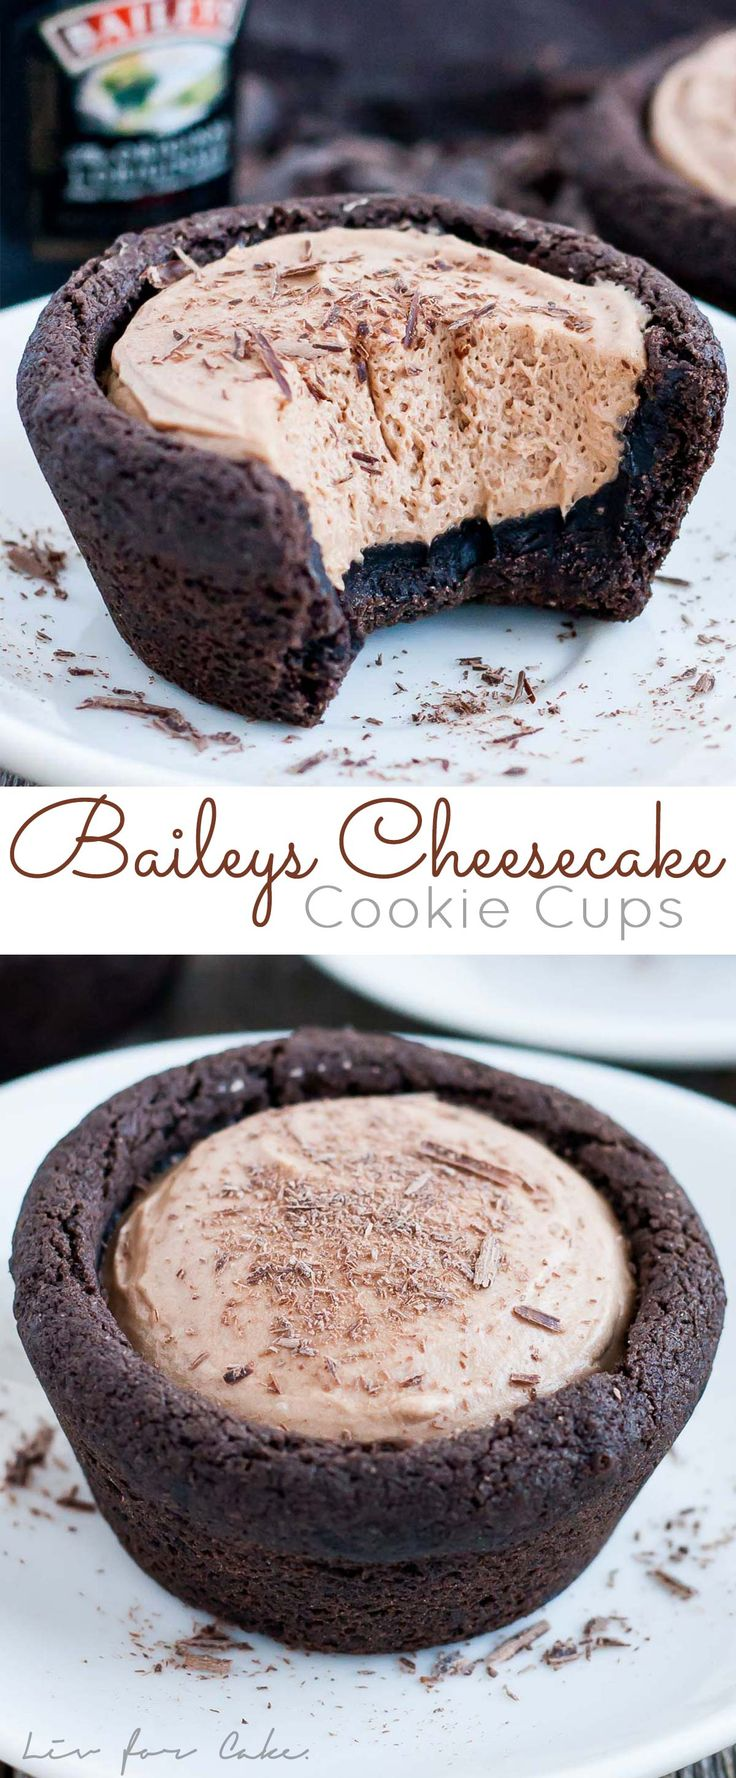 Chocolate cookie cups filled with a chocolate Baileys cheesecake. The perfect bite-sized indulgence! | livforcake.com